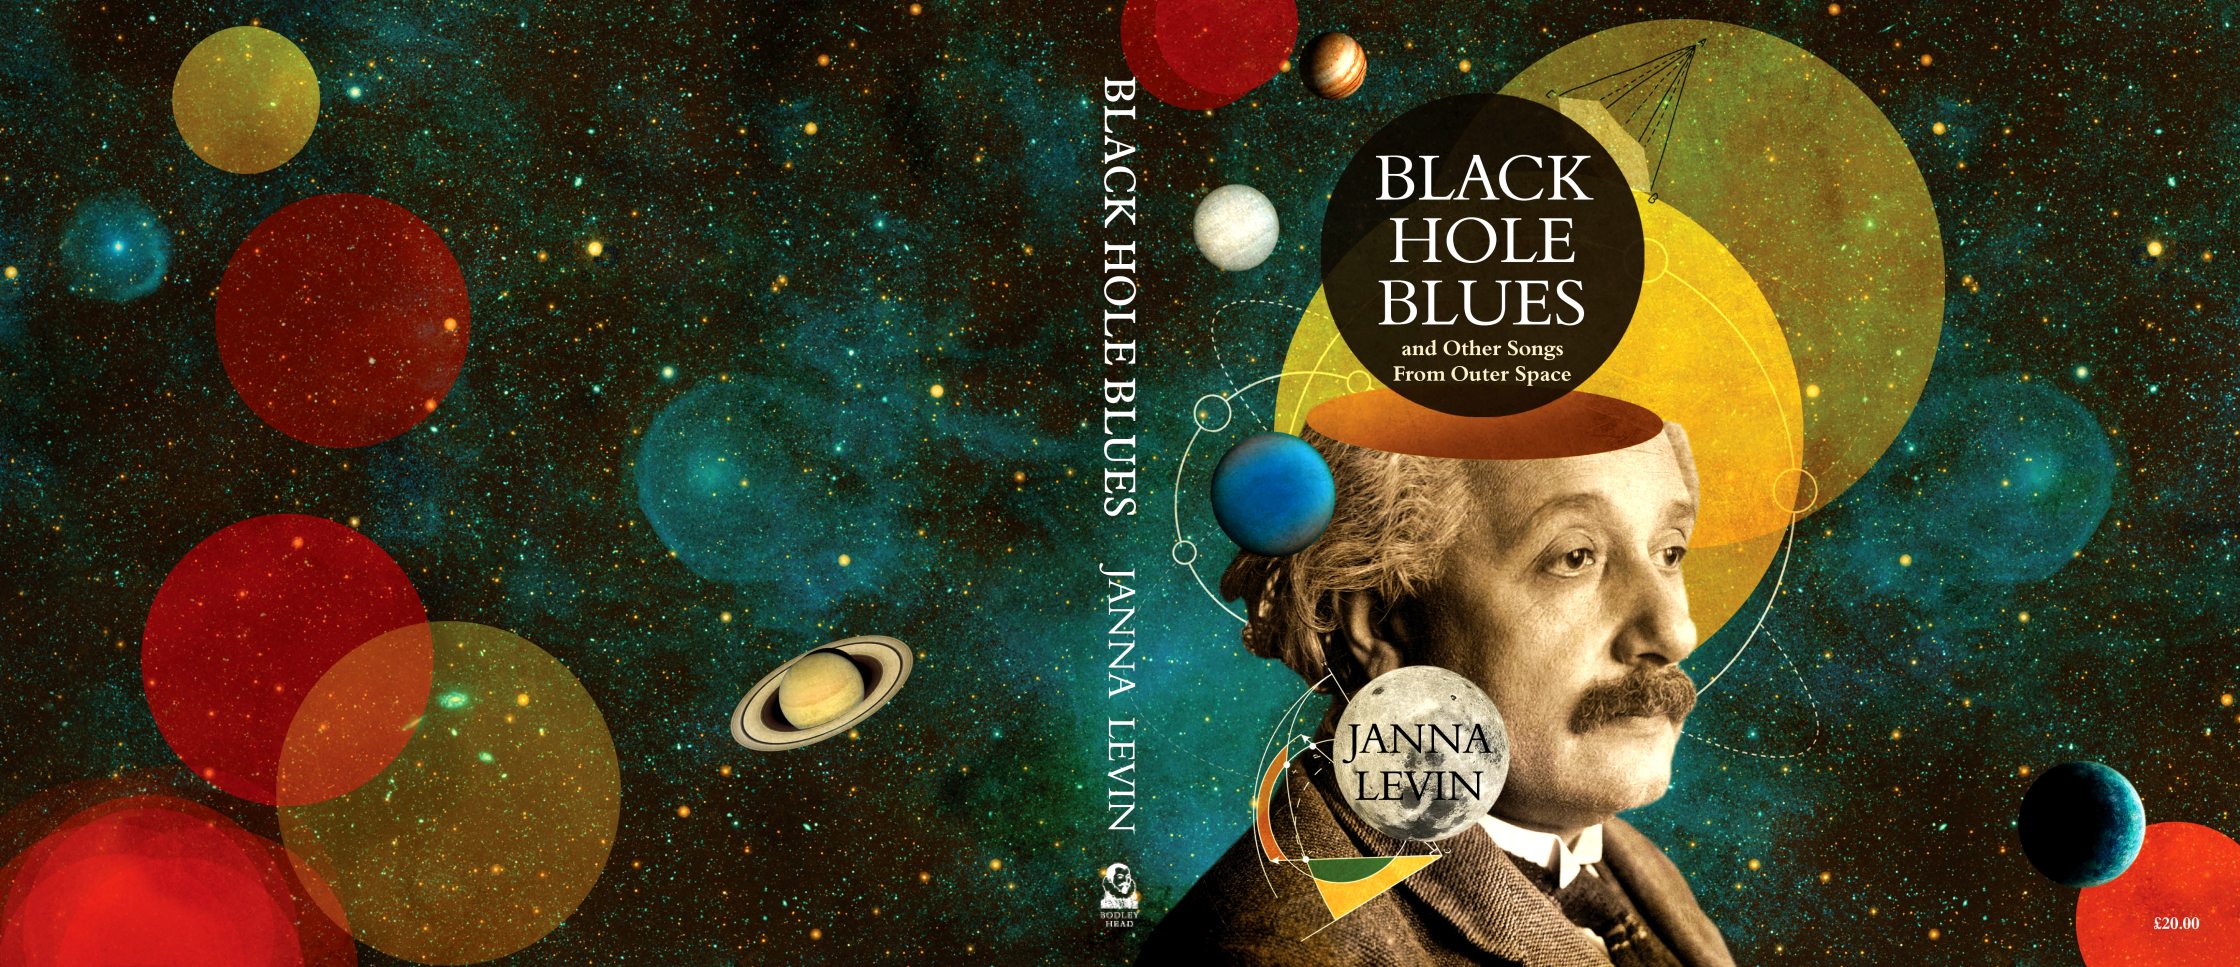 BlackHoleBlues-PenguinRandomHouse.jpg